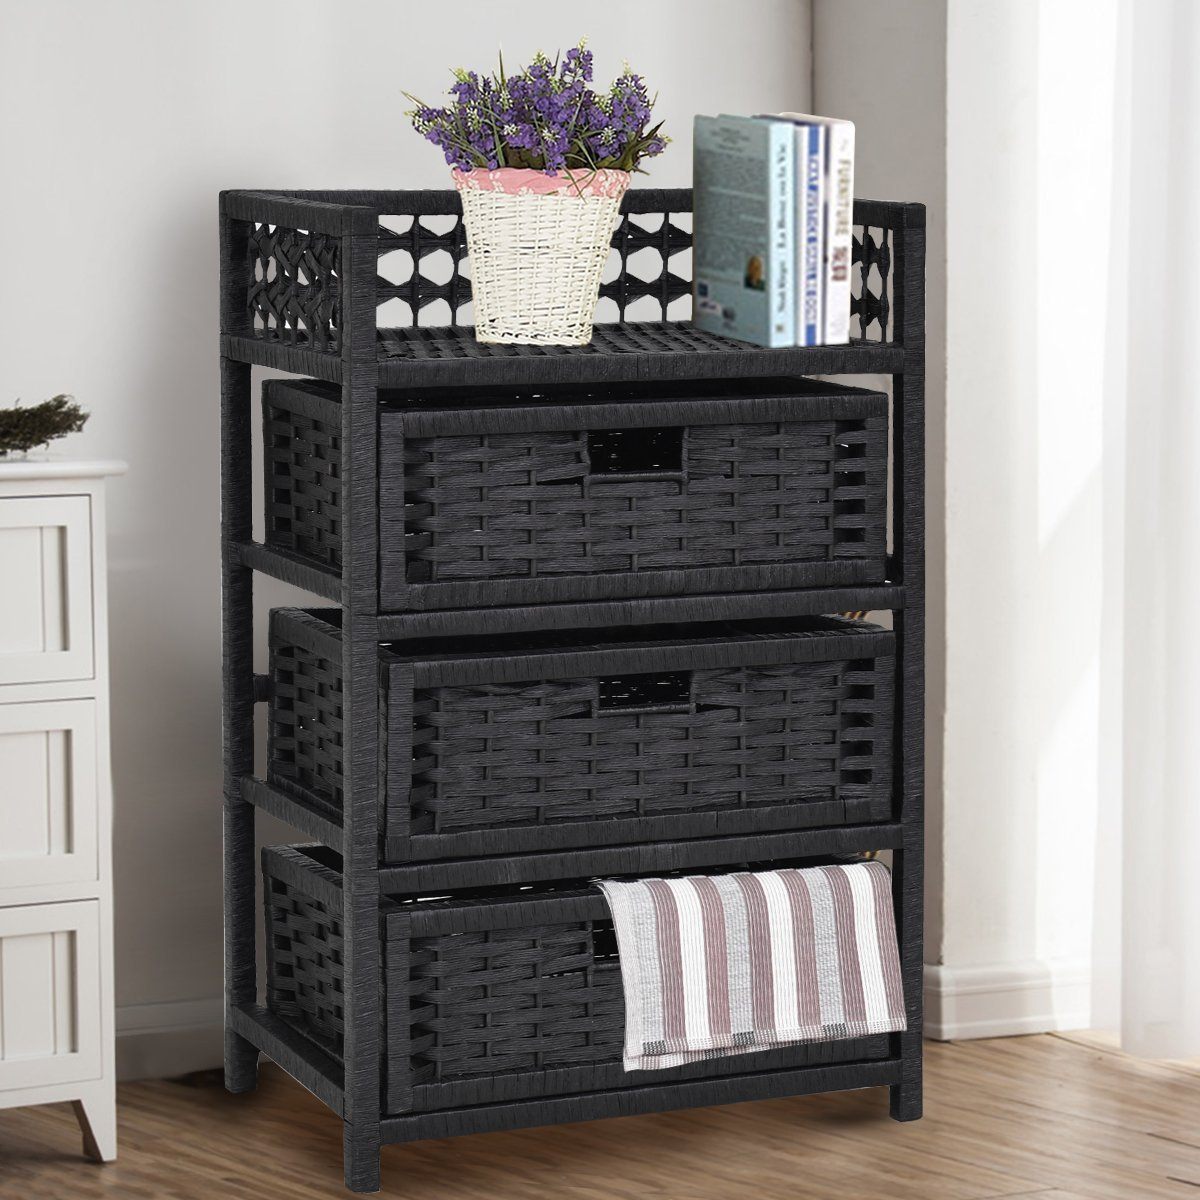 Giantex 3-Drawer Storage Organizer End Table Side Cabinet Nightstand Bedroom, Office & Living Room Hand-Woven Paper Rope Storage Chest w/Solid Wood Frame 3 Removable Drawers, Black